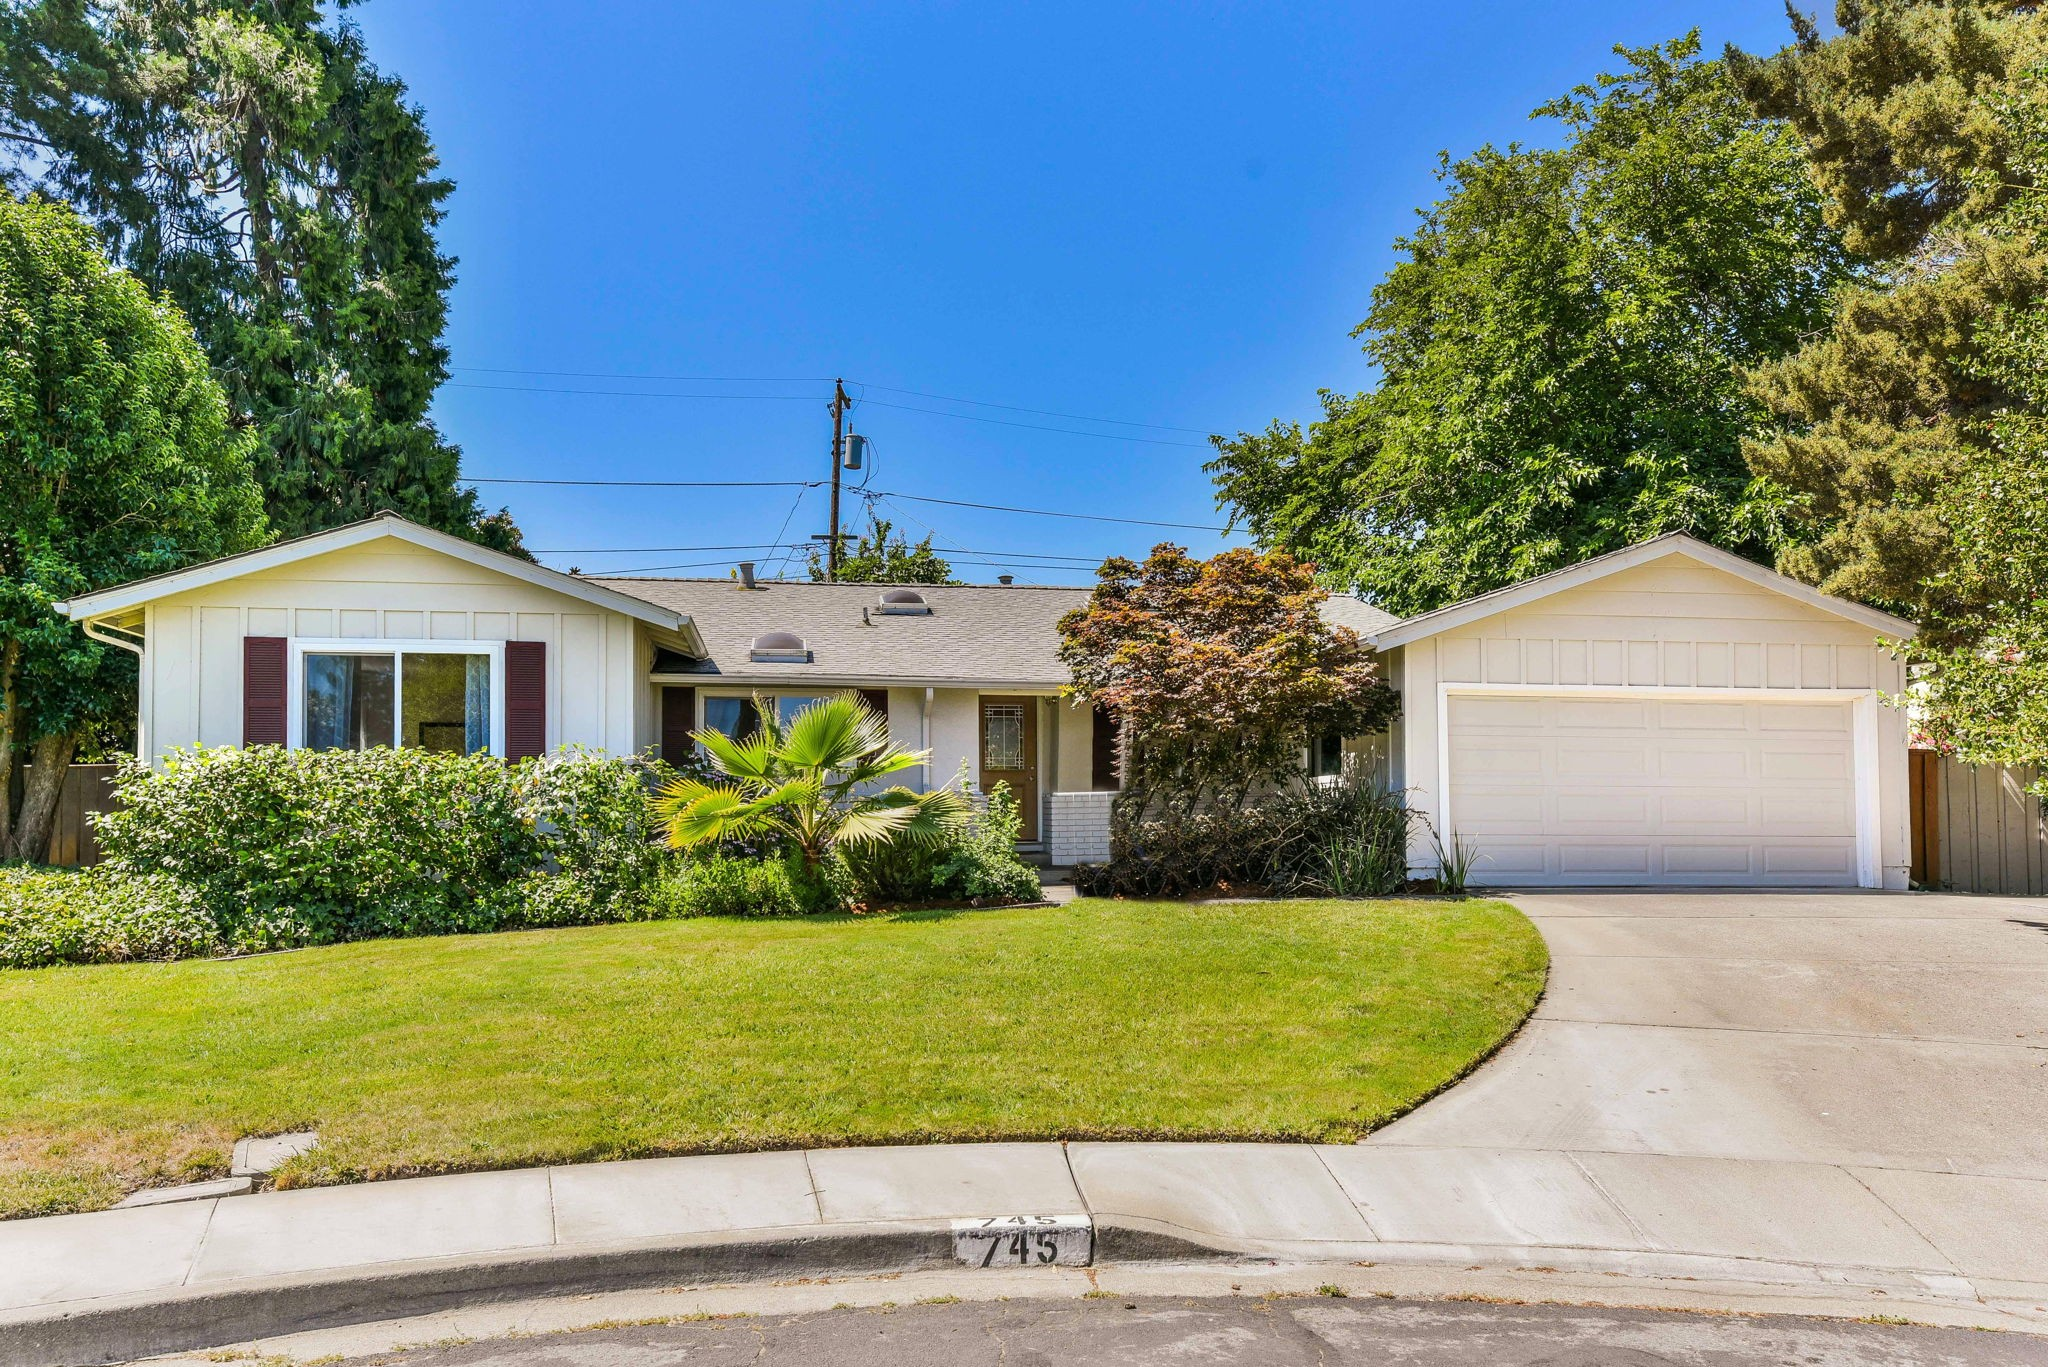 Beautifully Remodeled Rancher in Desirable Ygnacio Wood Near Walnut Creek Border